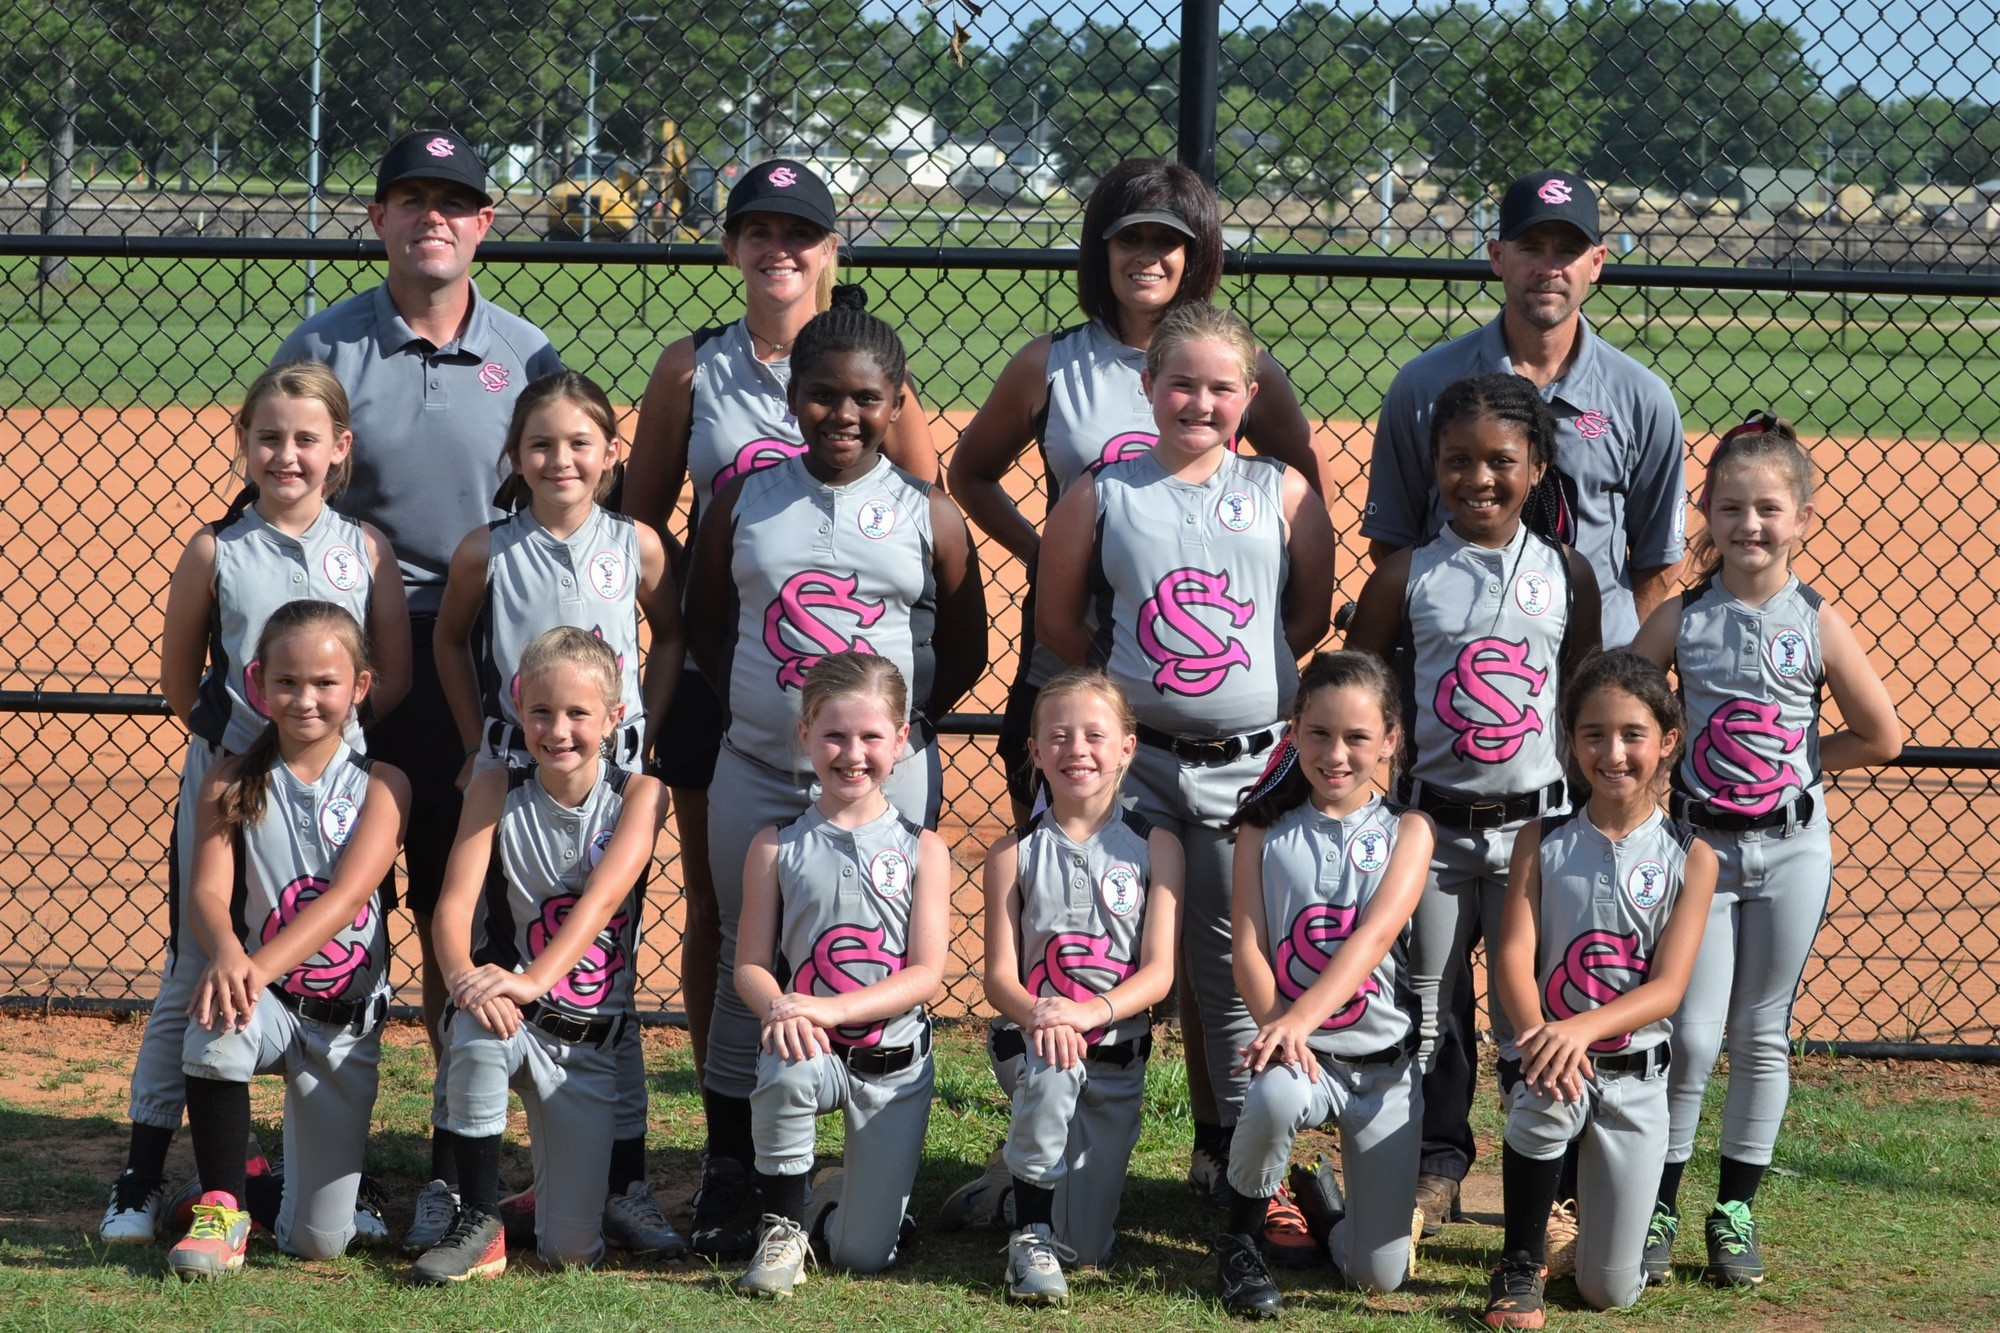 Dixie Darlings team ready for World Series | The Sumter Item